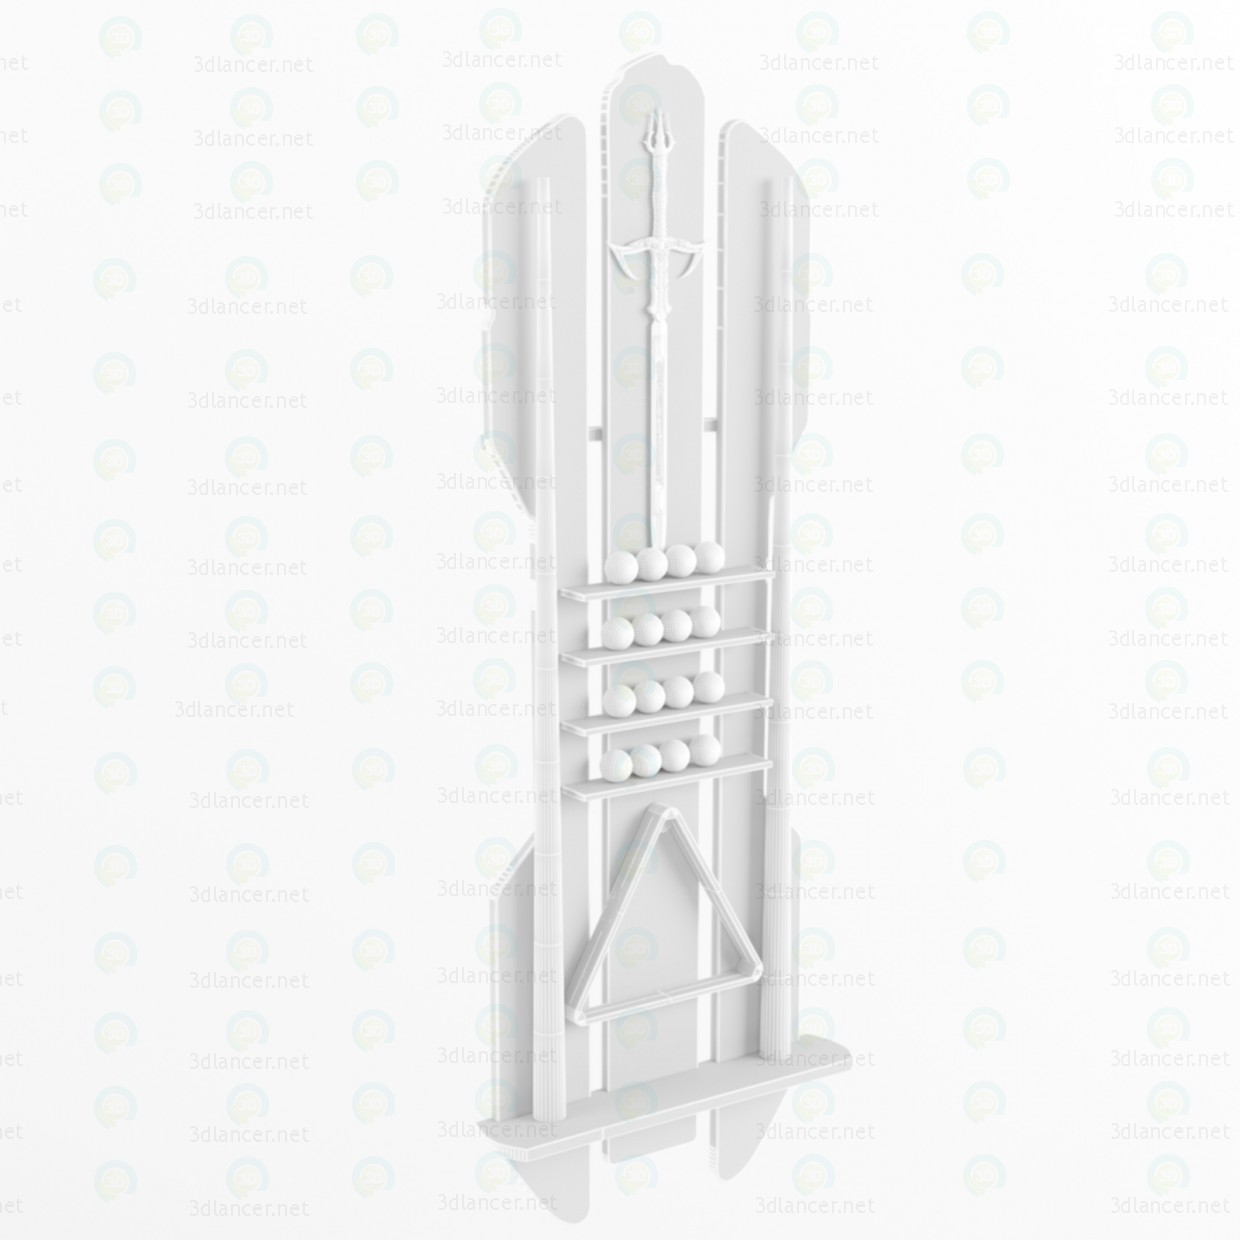 3d Richard Stand for pool cue model buy - render